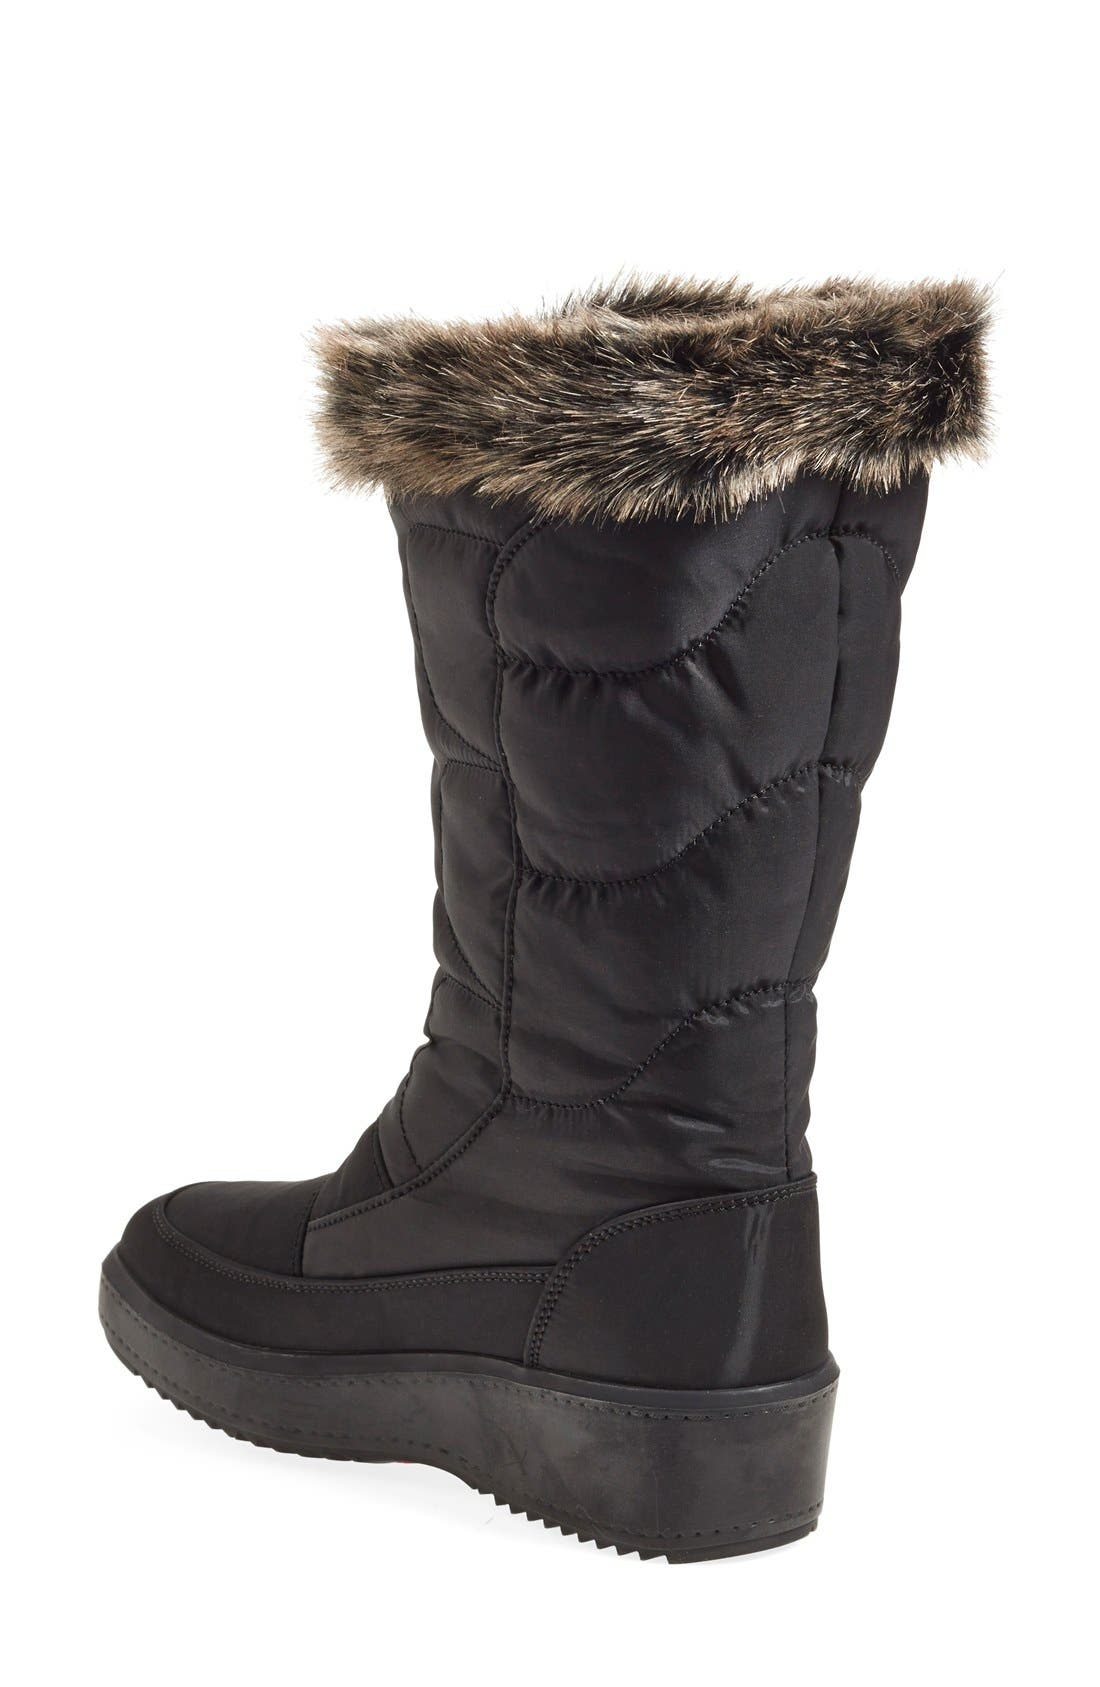 'Louise' Weatherproof Boot,                             Alternate thumbnail 2, color,                             Black Fabric